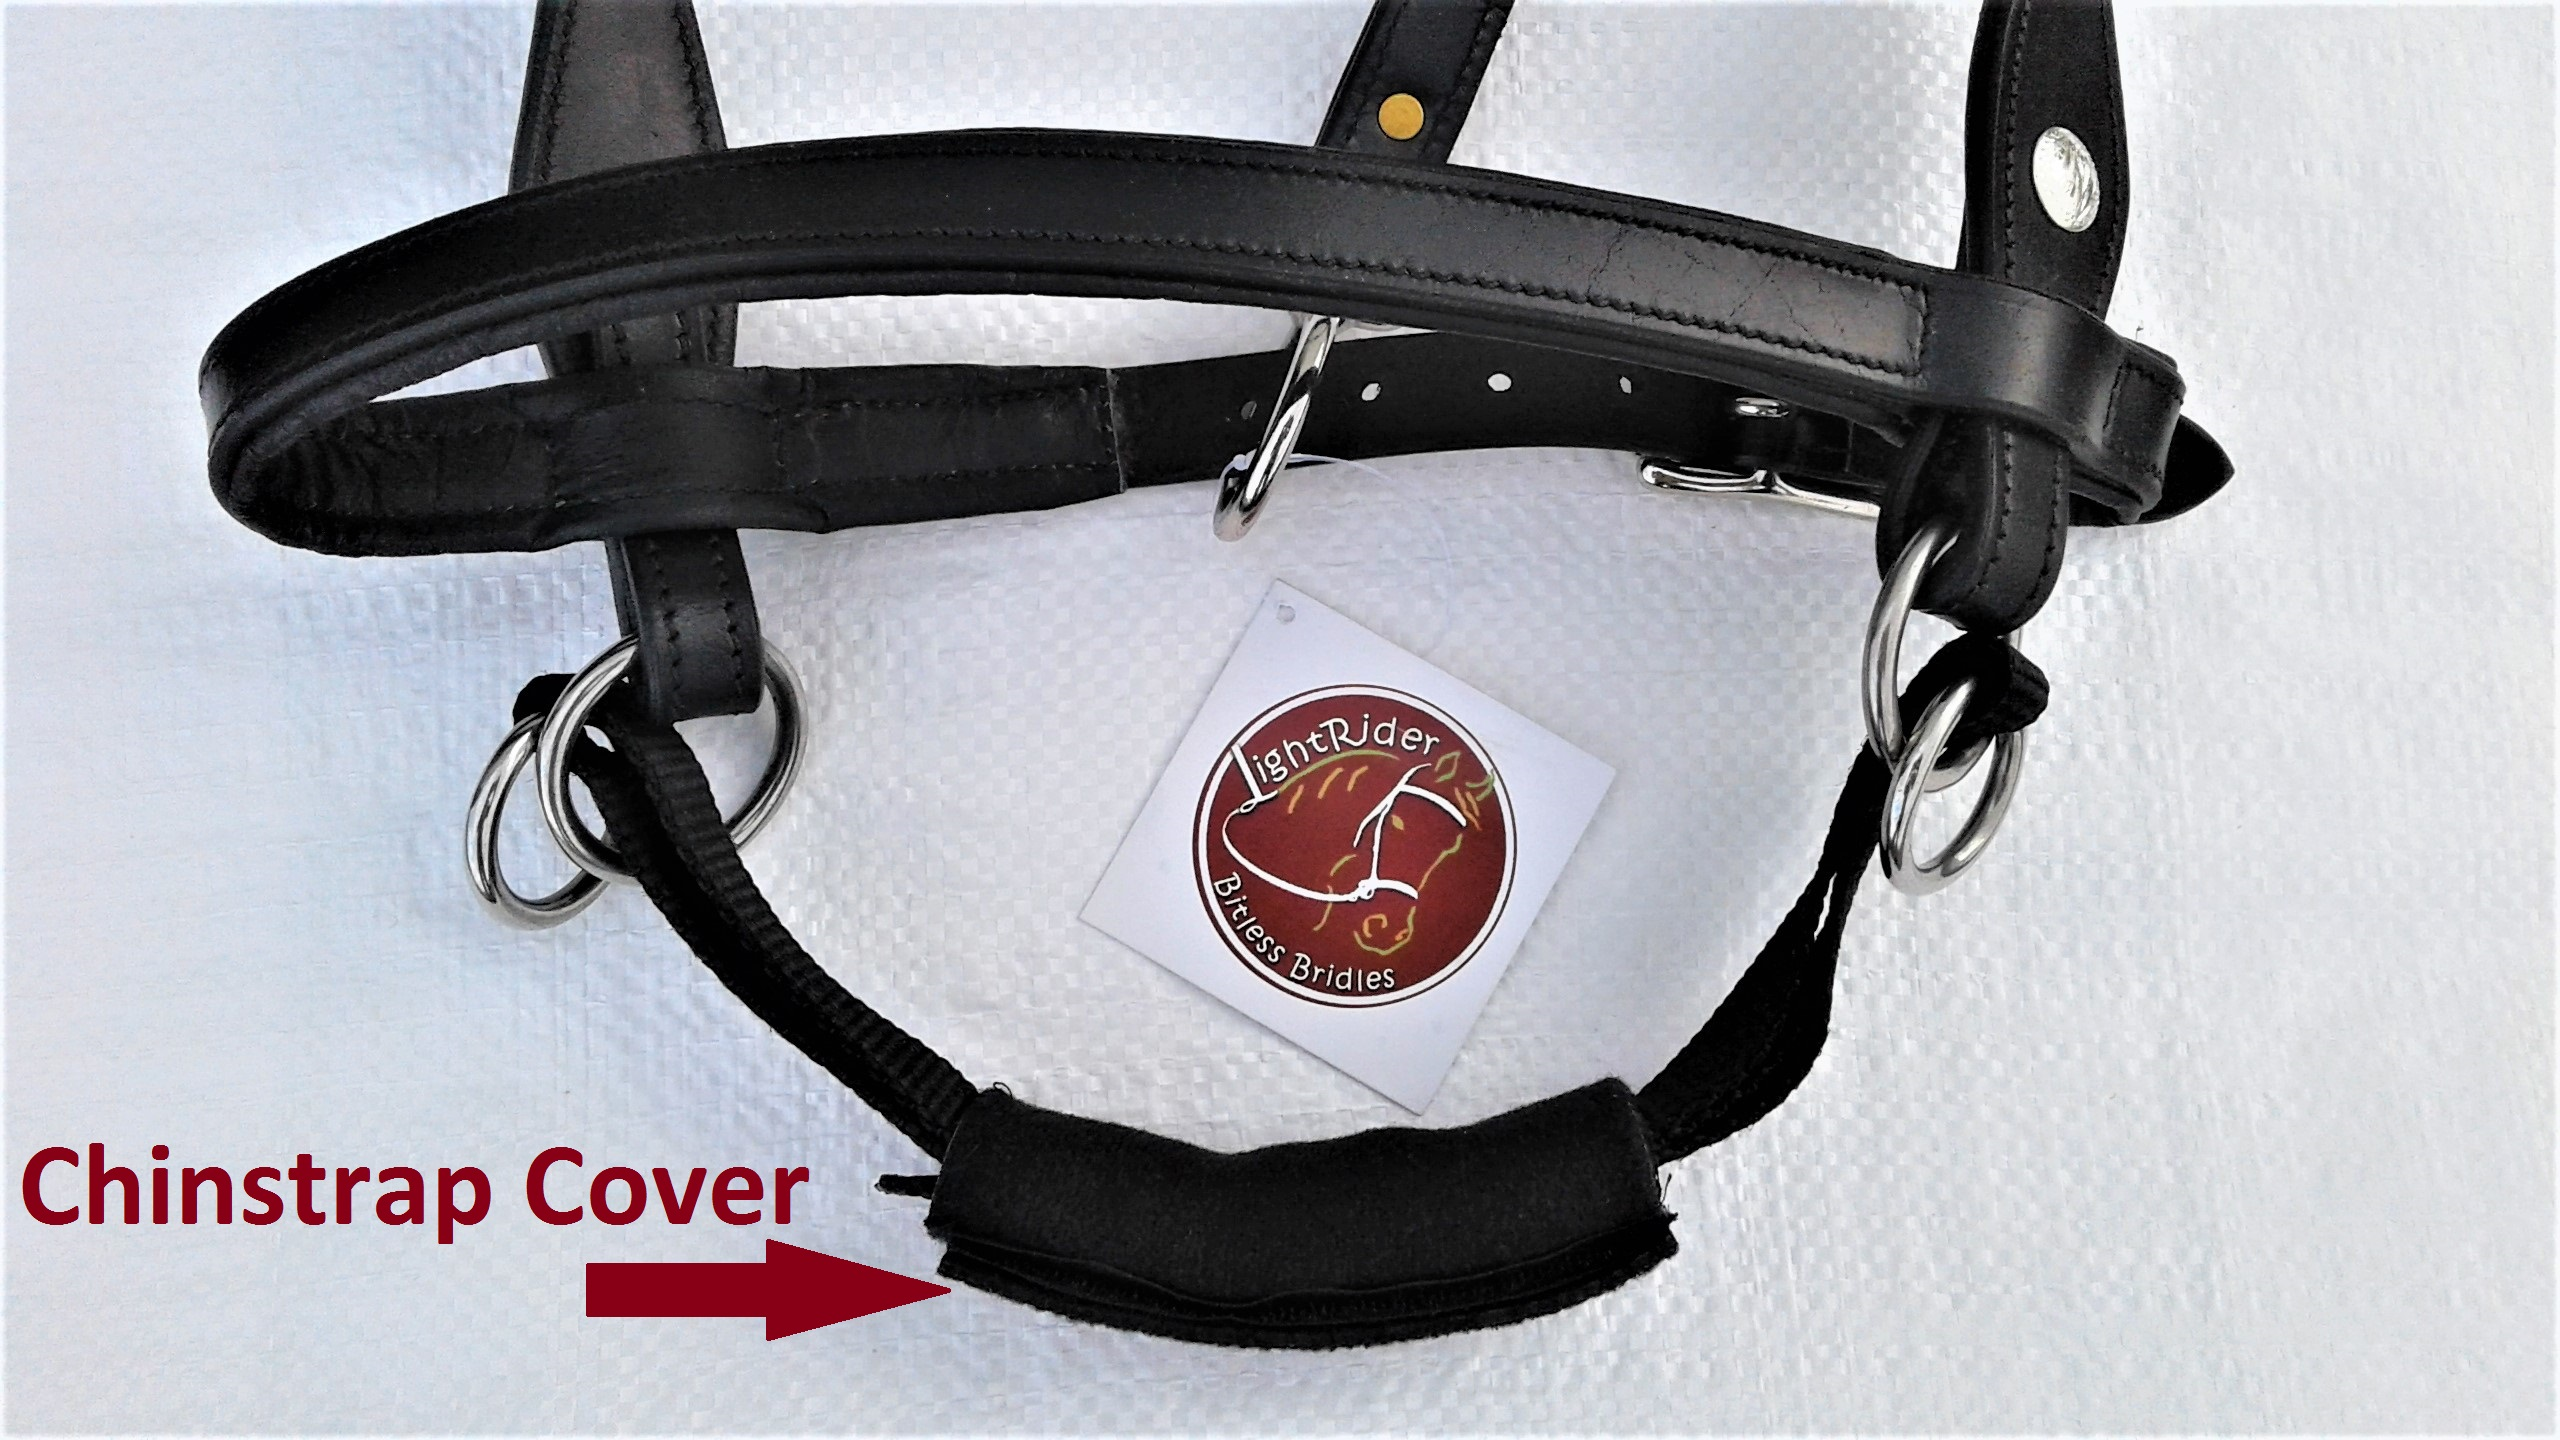 LightRider Chinstrap Cover